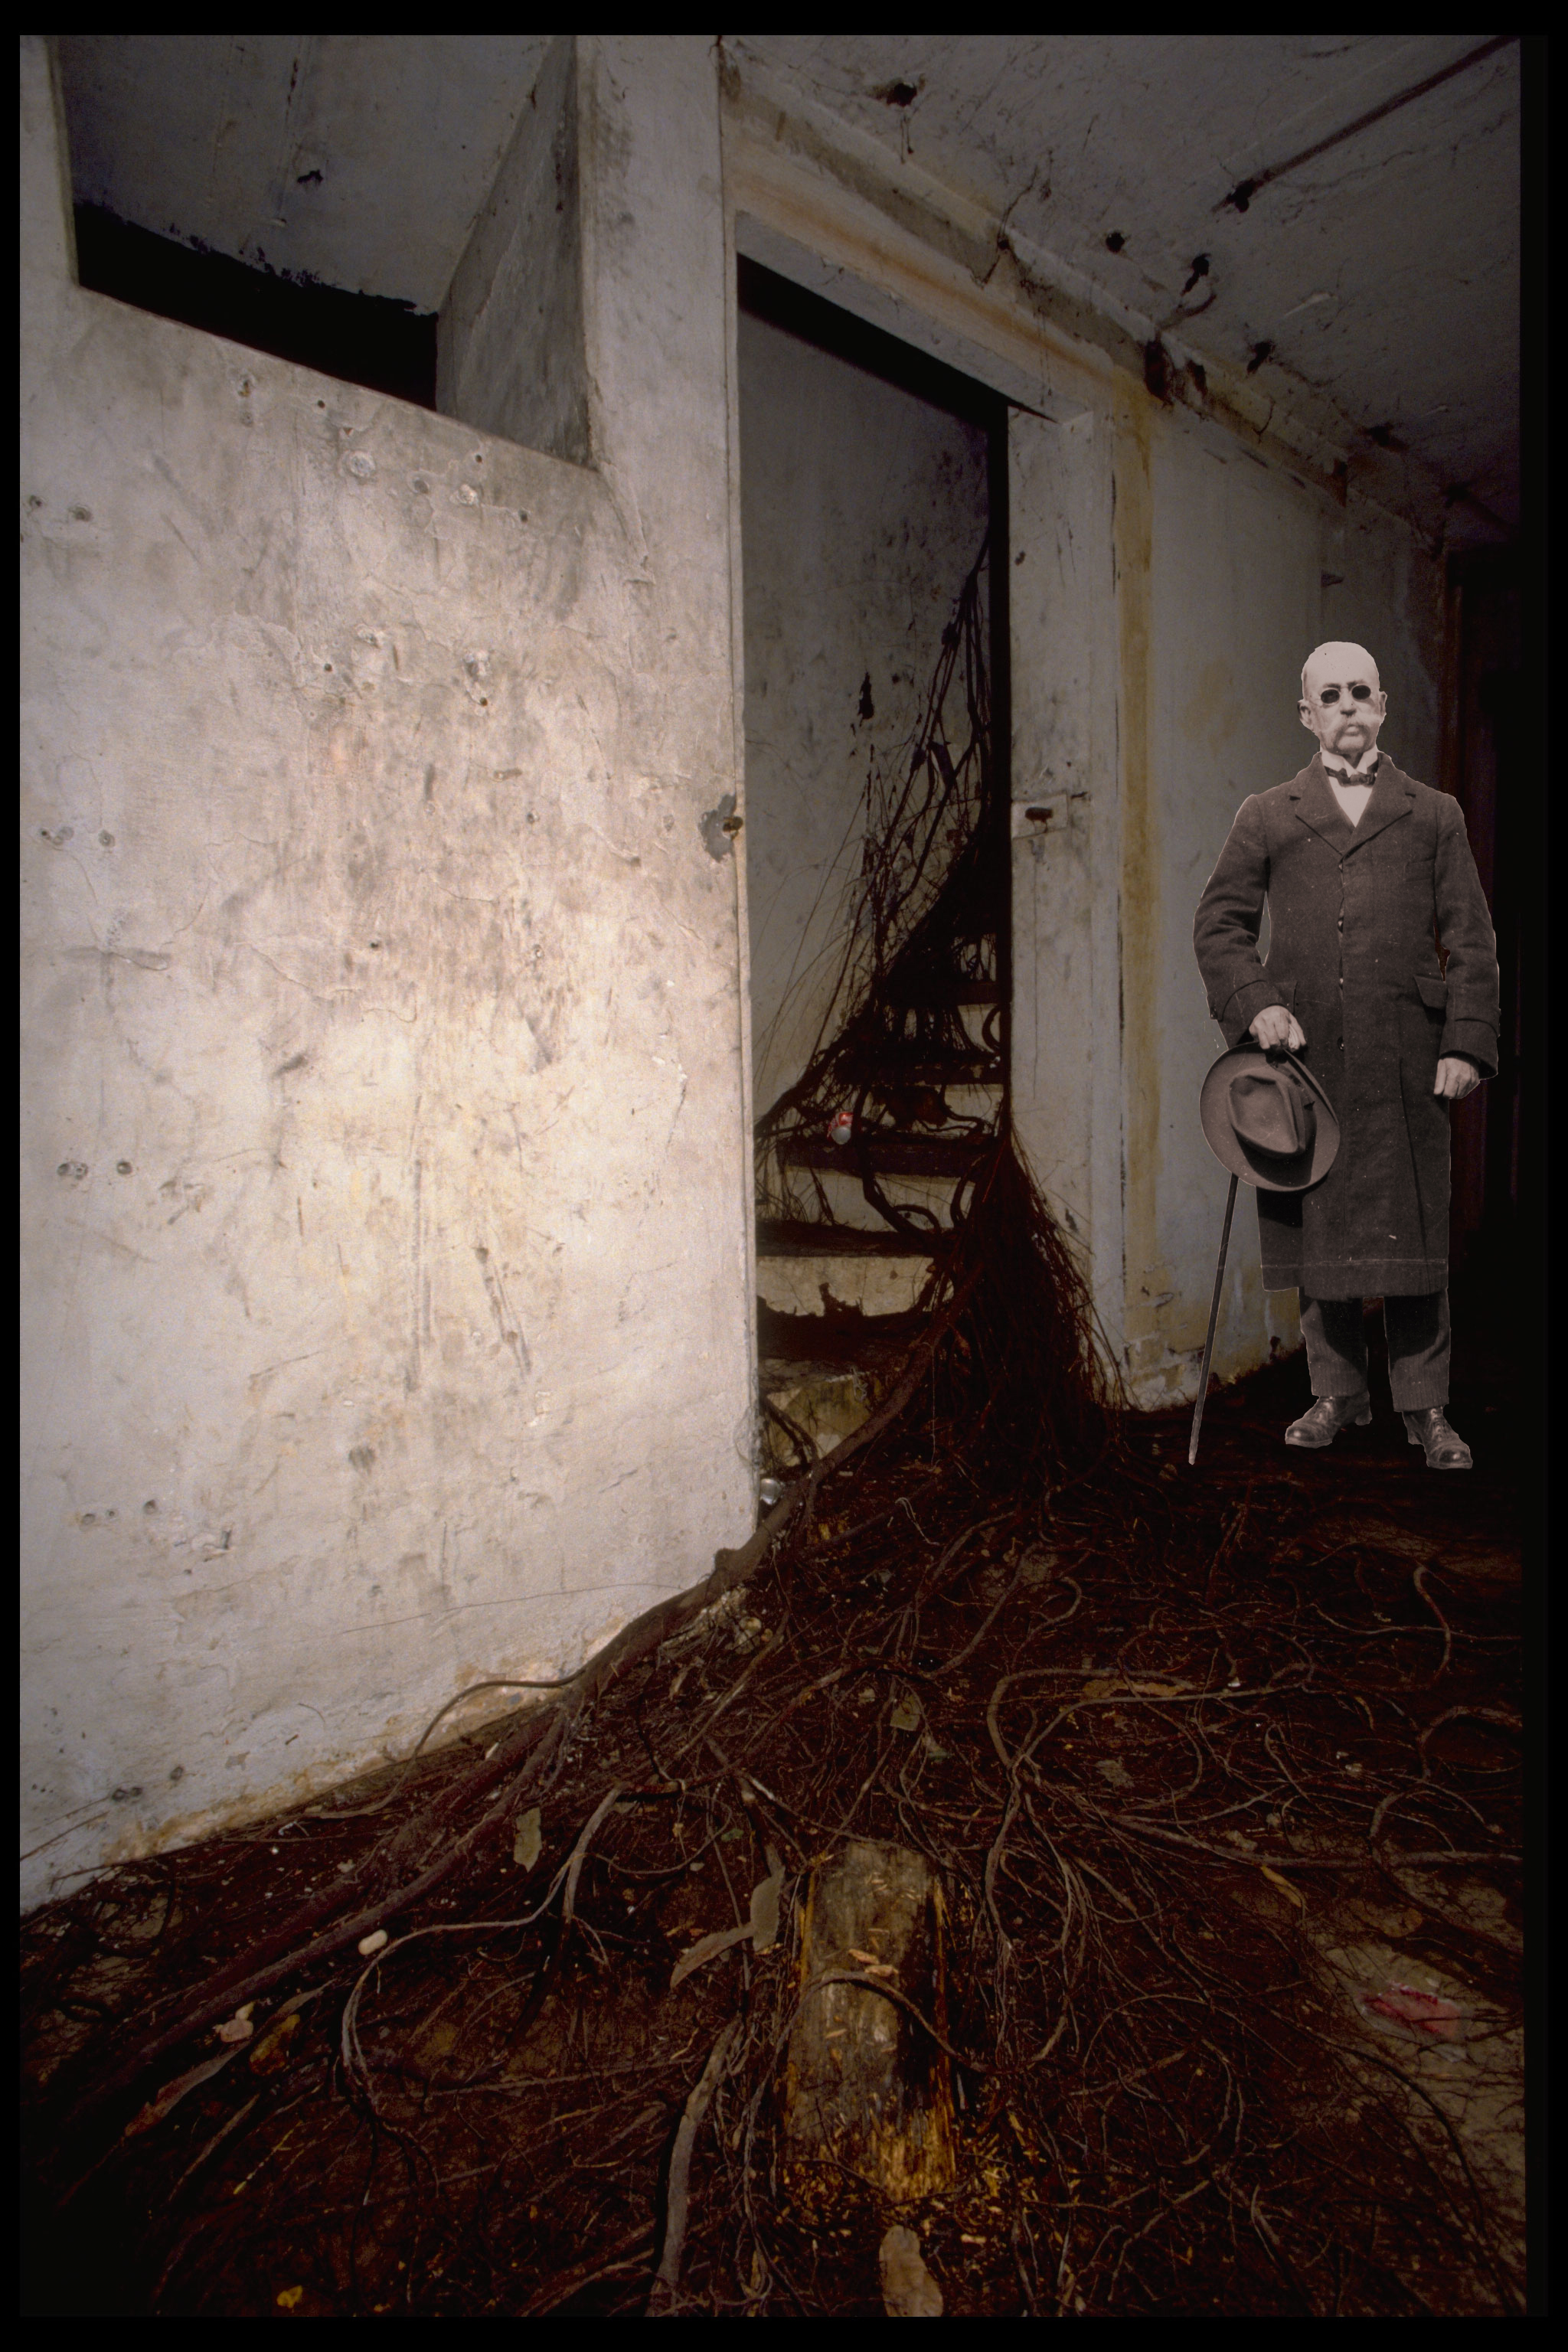 Image of a man with glasses photoshopped into a grimy room. The floor is covered by an overgrown tre